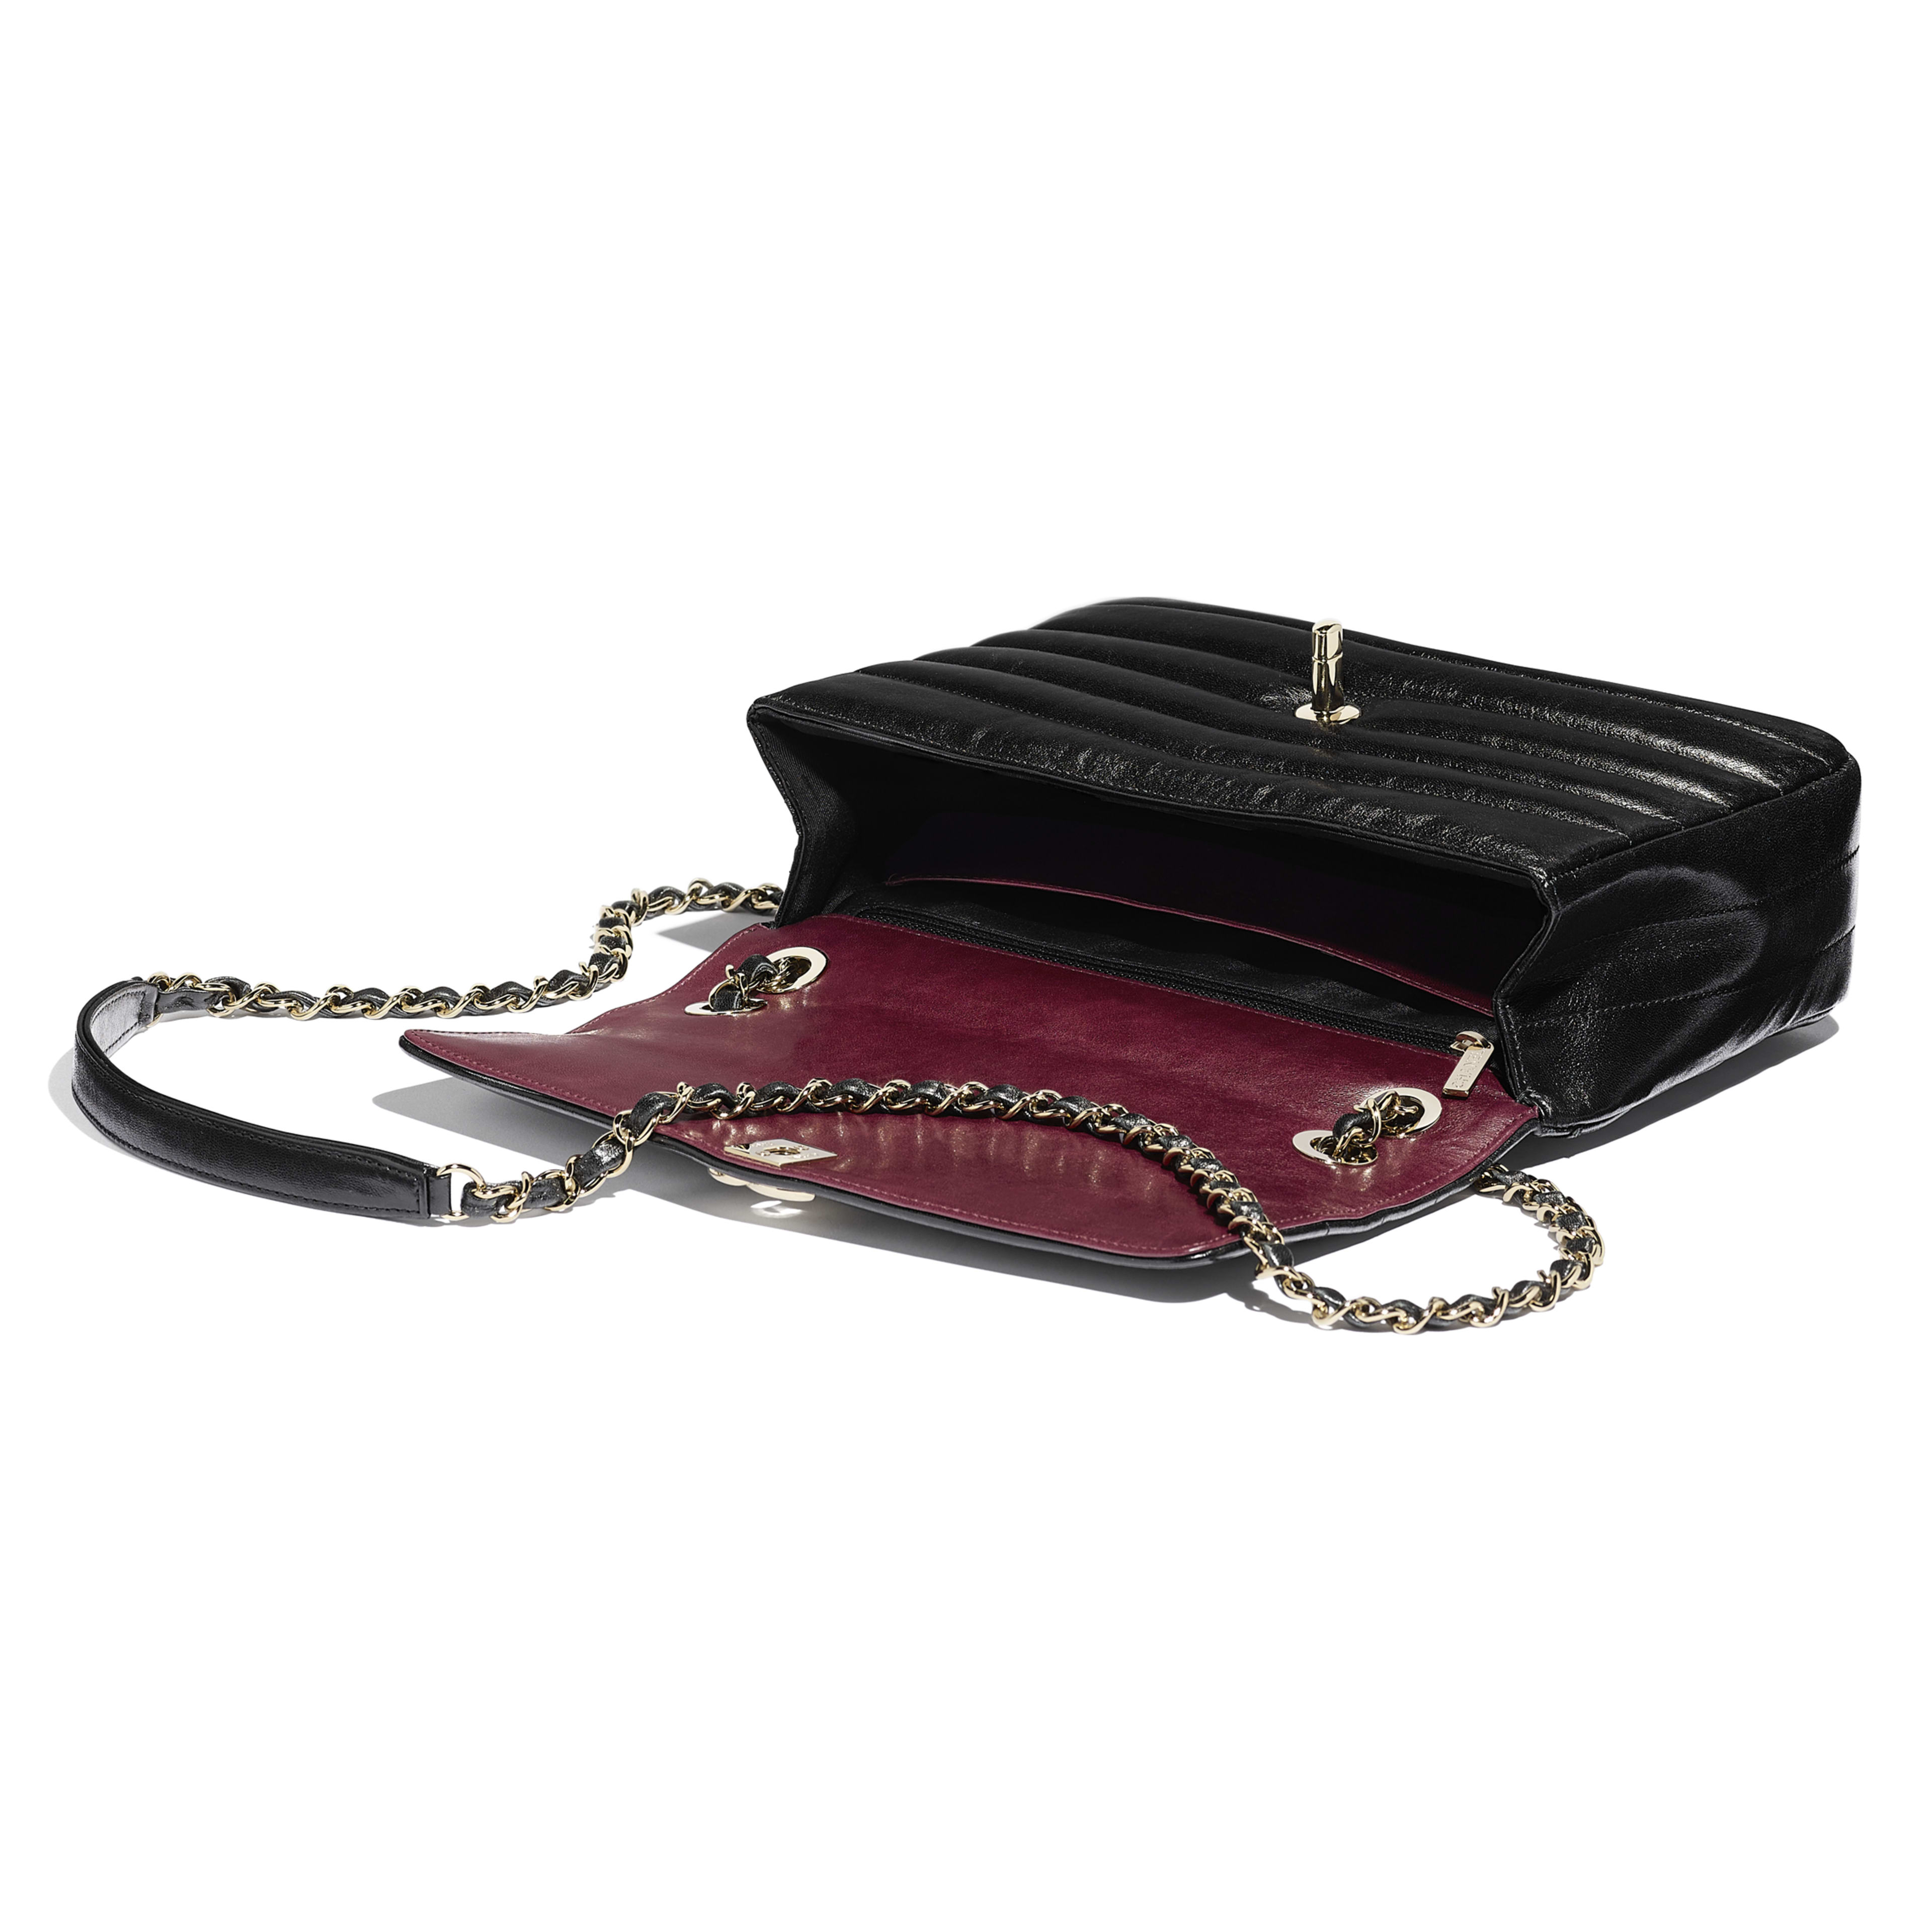 Flap Bag - Black - Lambskin & Gold-Tone Metal - Other view - see full sized version